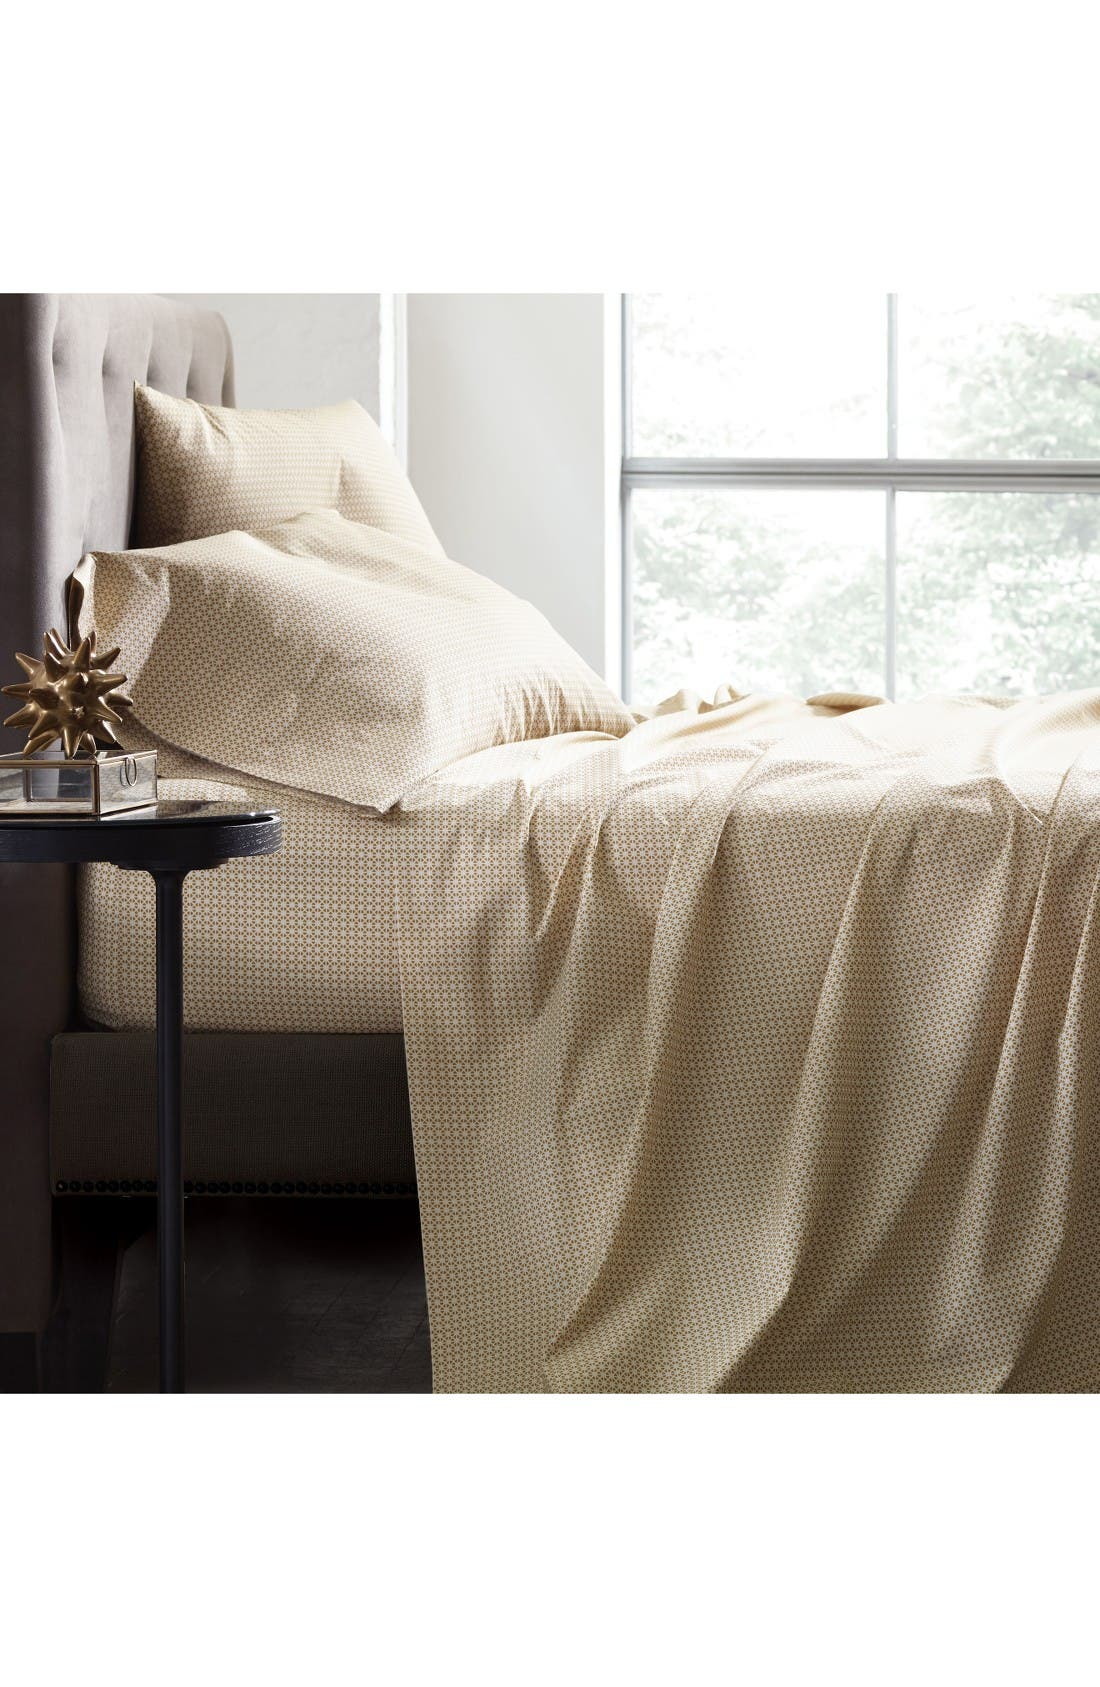 Alternate Image 1 Selected - DwellStudio Fez Ochre 200 Thread Count Sheet Set